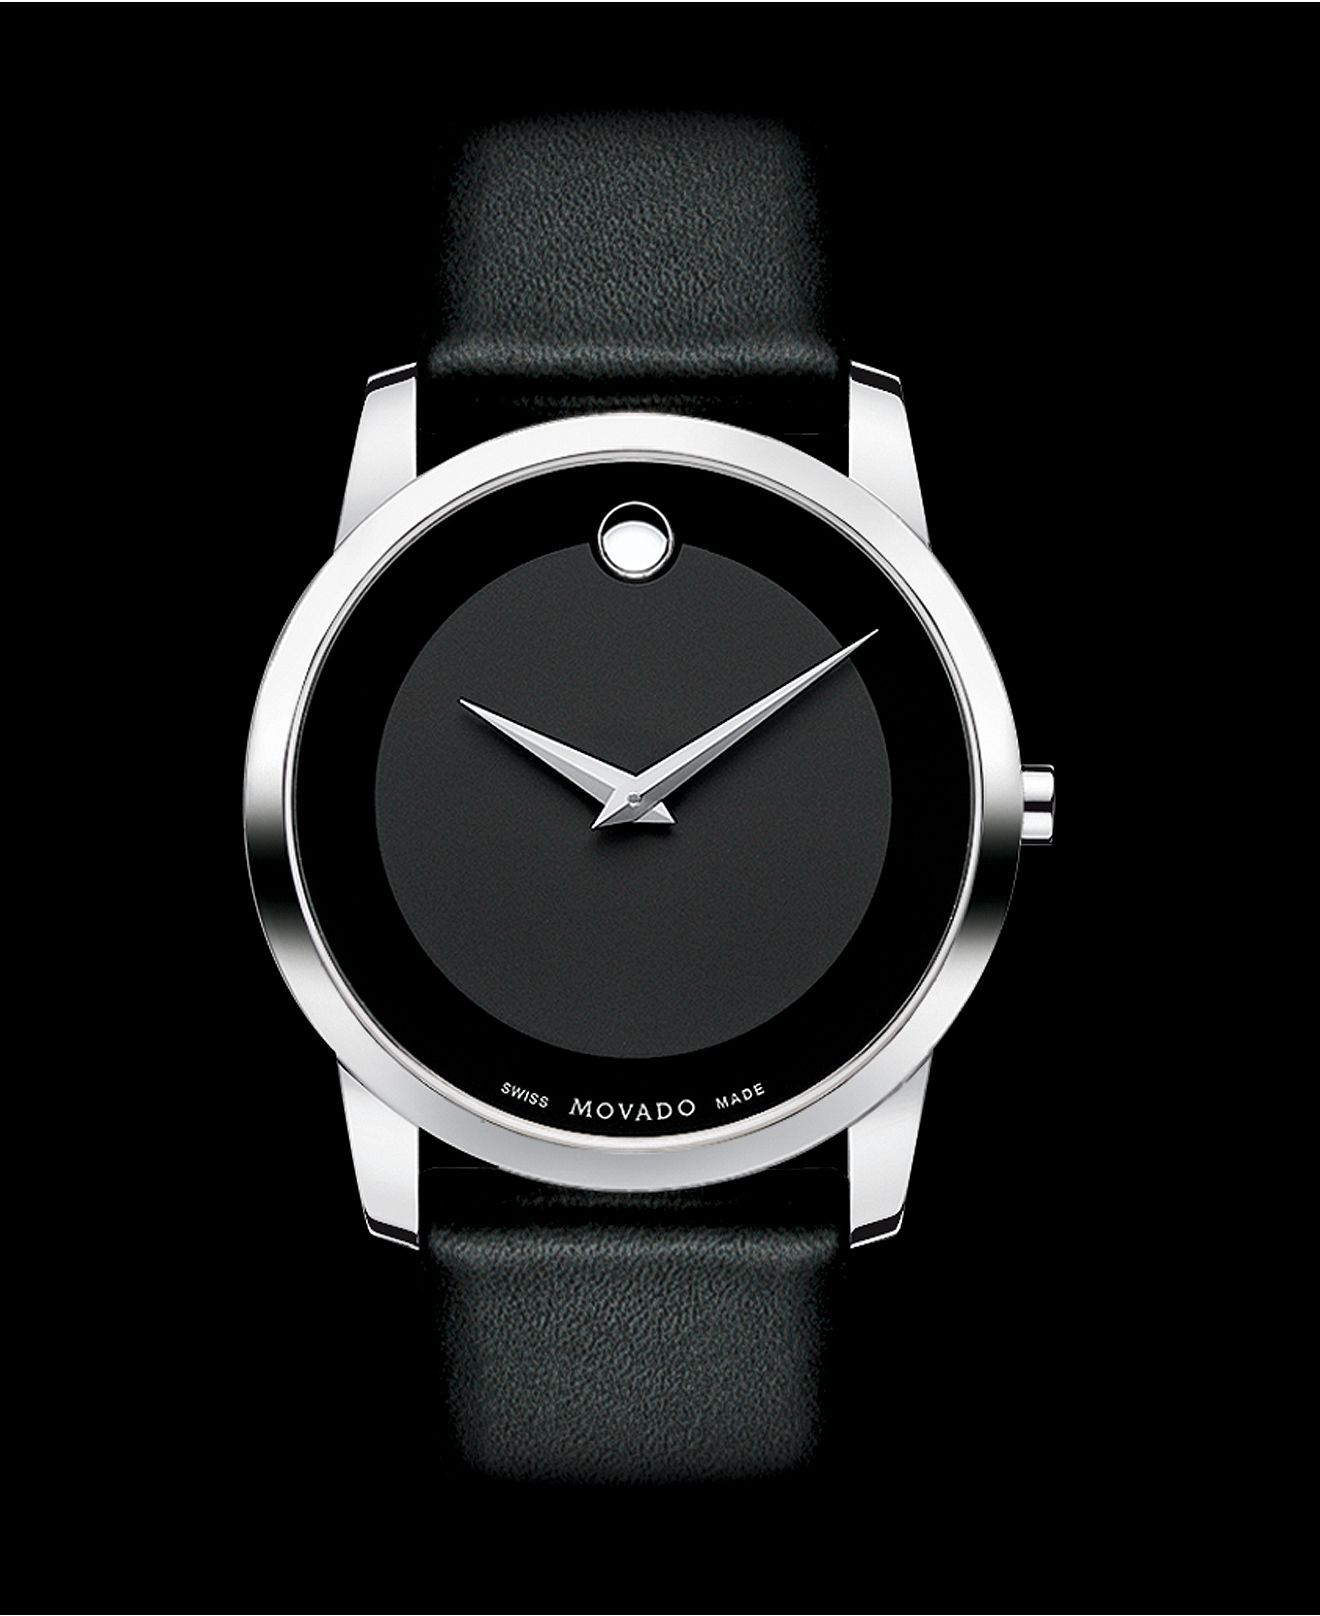 Movado Mens Watches on Pinterest | Bulova Mens Watches ...